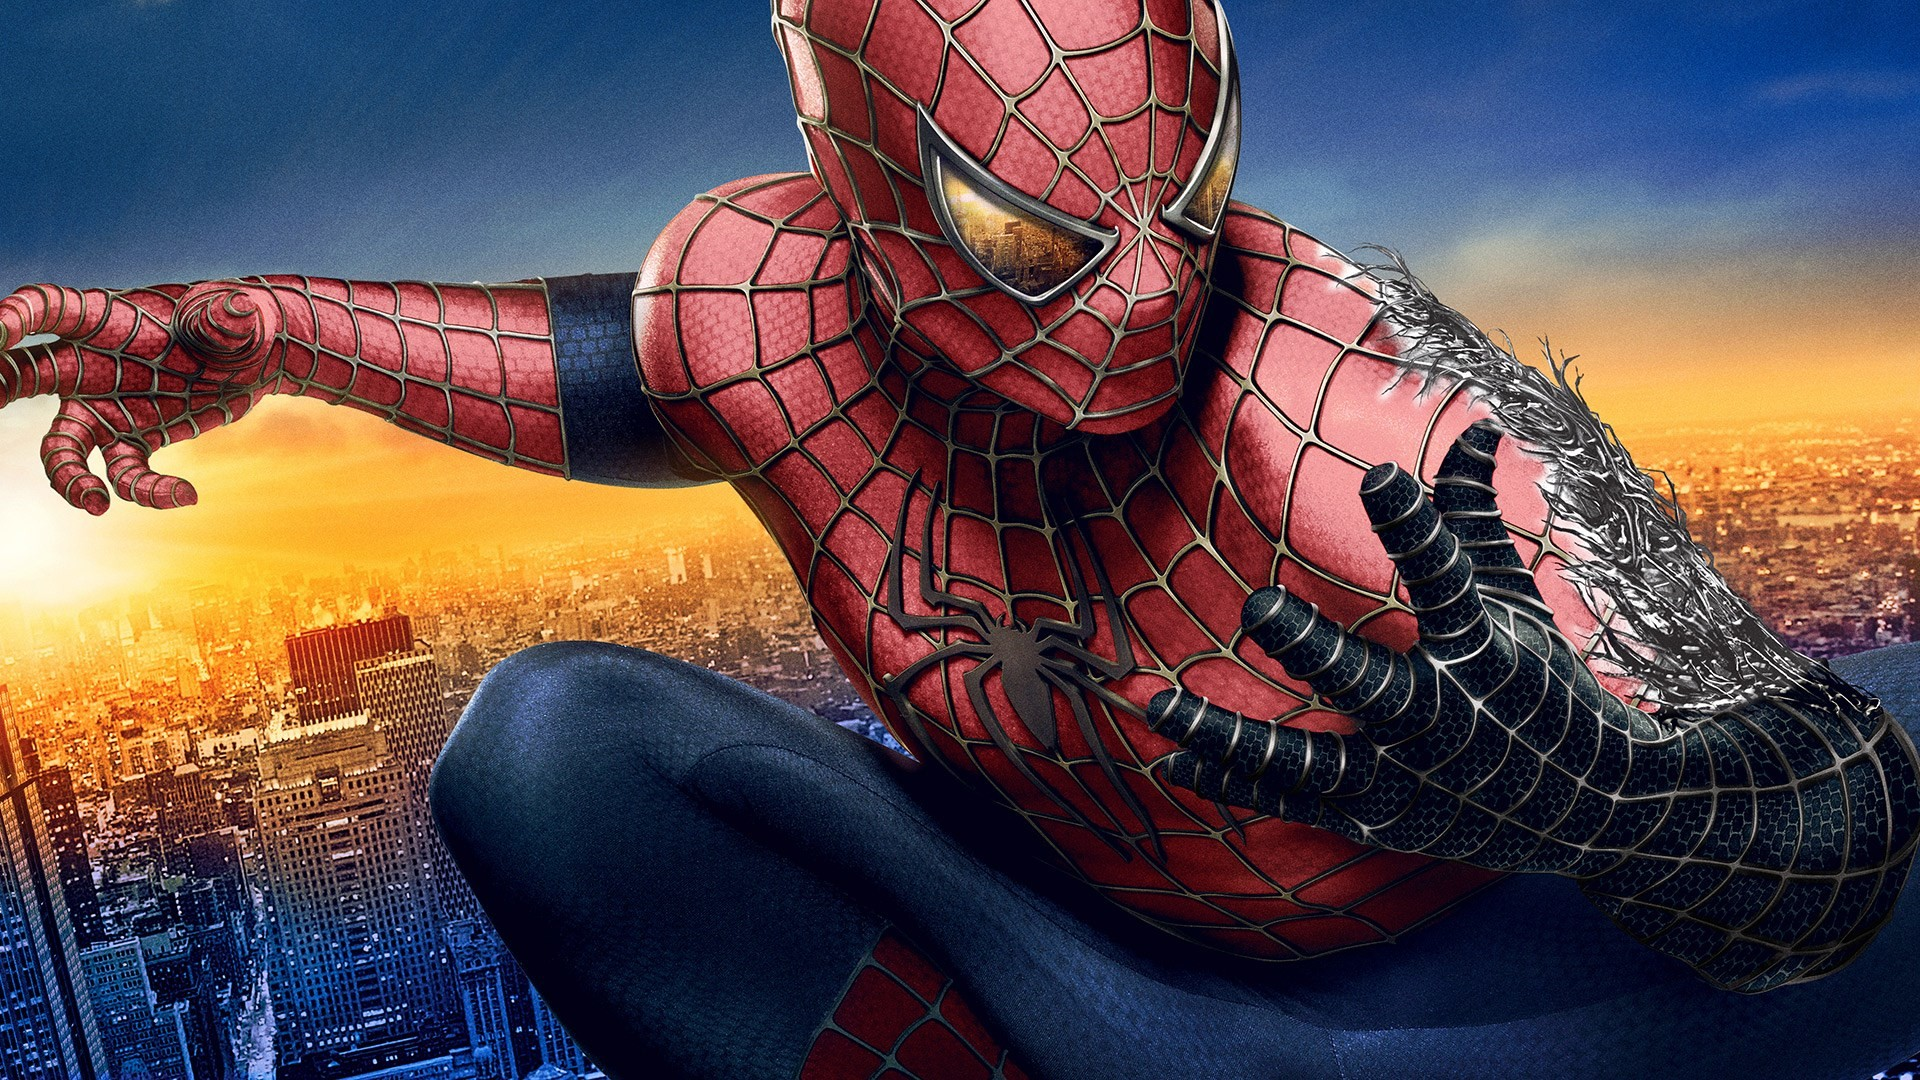 Spider Man 3 Wallpapers (64+ images)